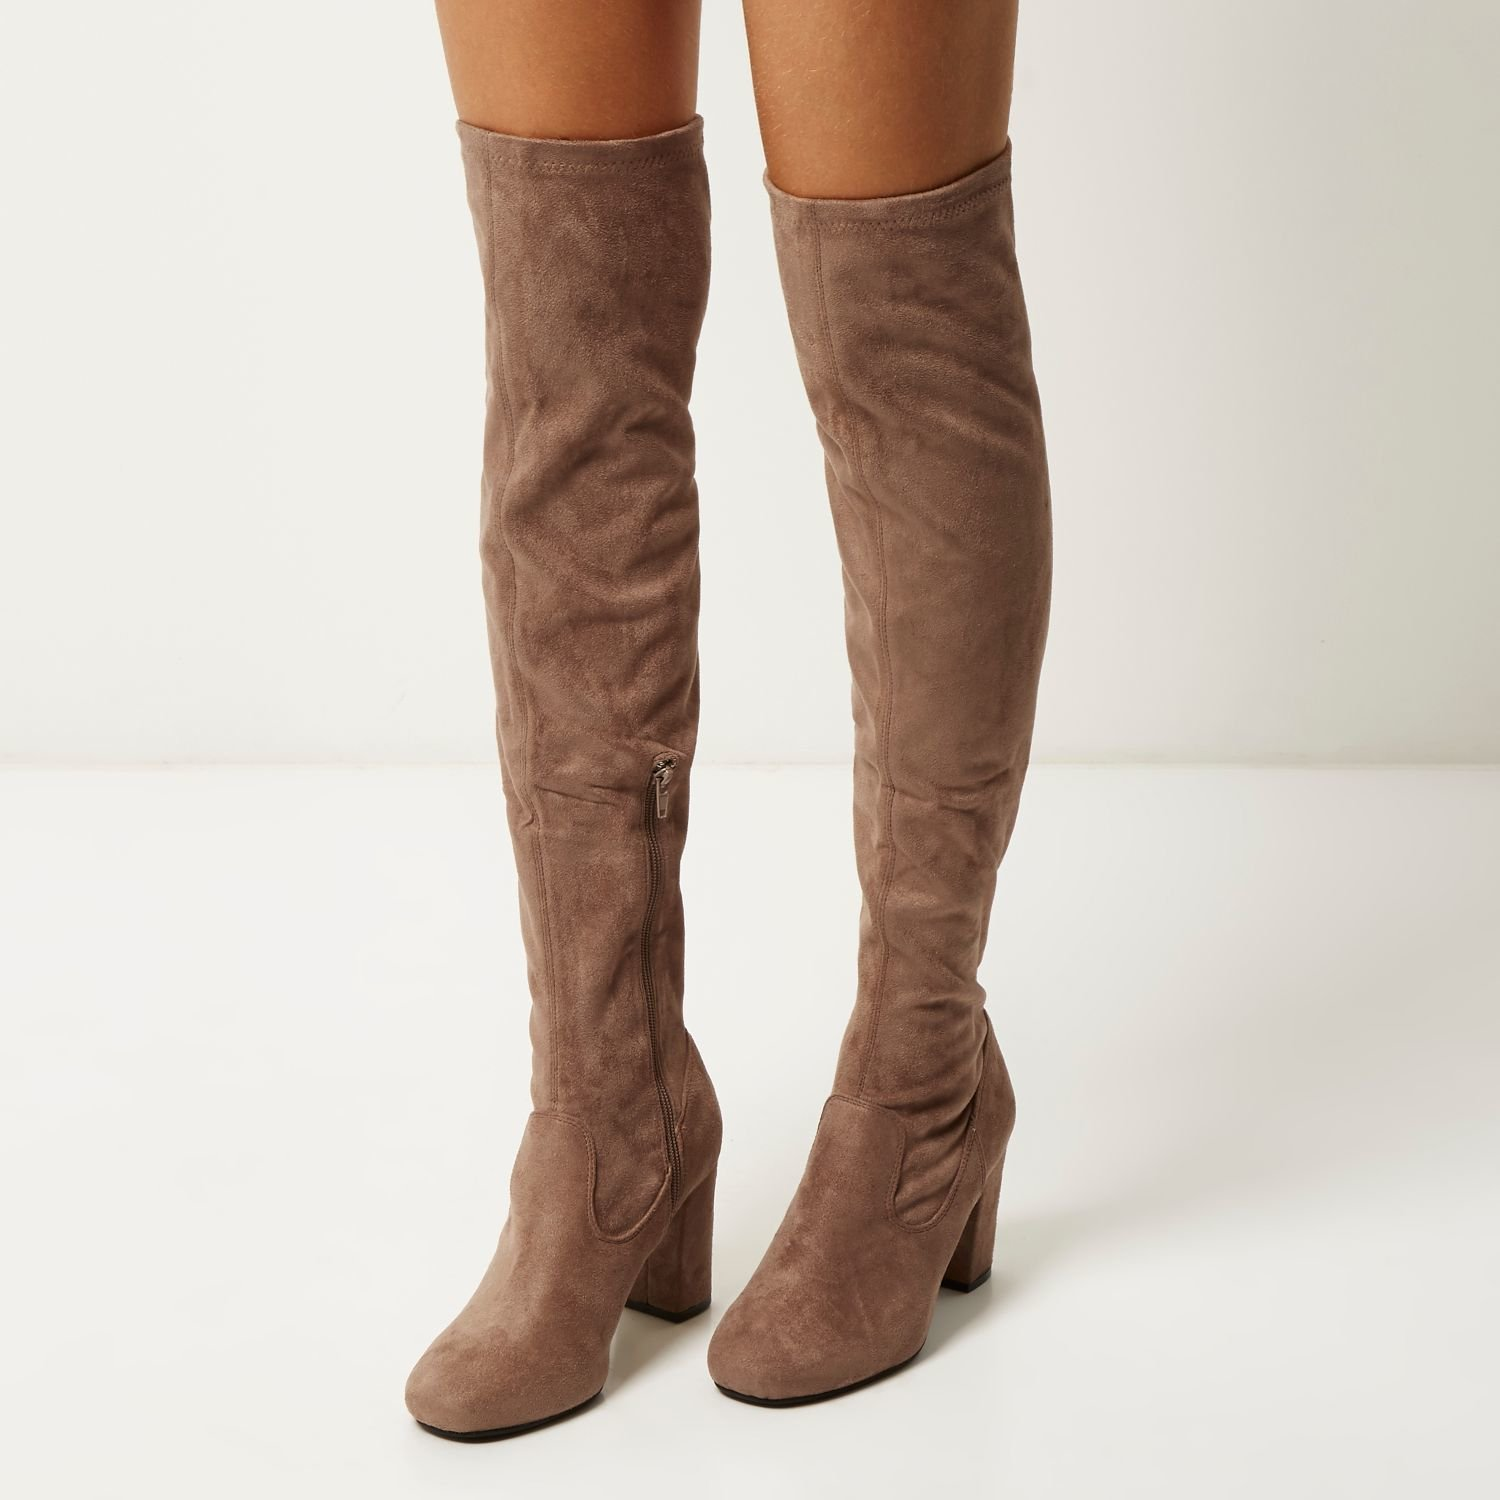 Over The Knee Boots Dressed up or down, over-the-knee boots, or OTKs, are a cold-weather fashion staple. Give your look a little oomph — we've got hot options from Cole Haan, COACH, Donald J. .